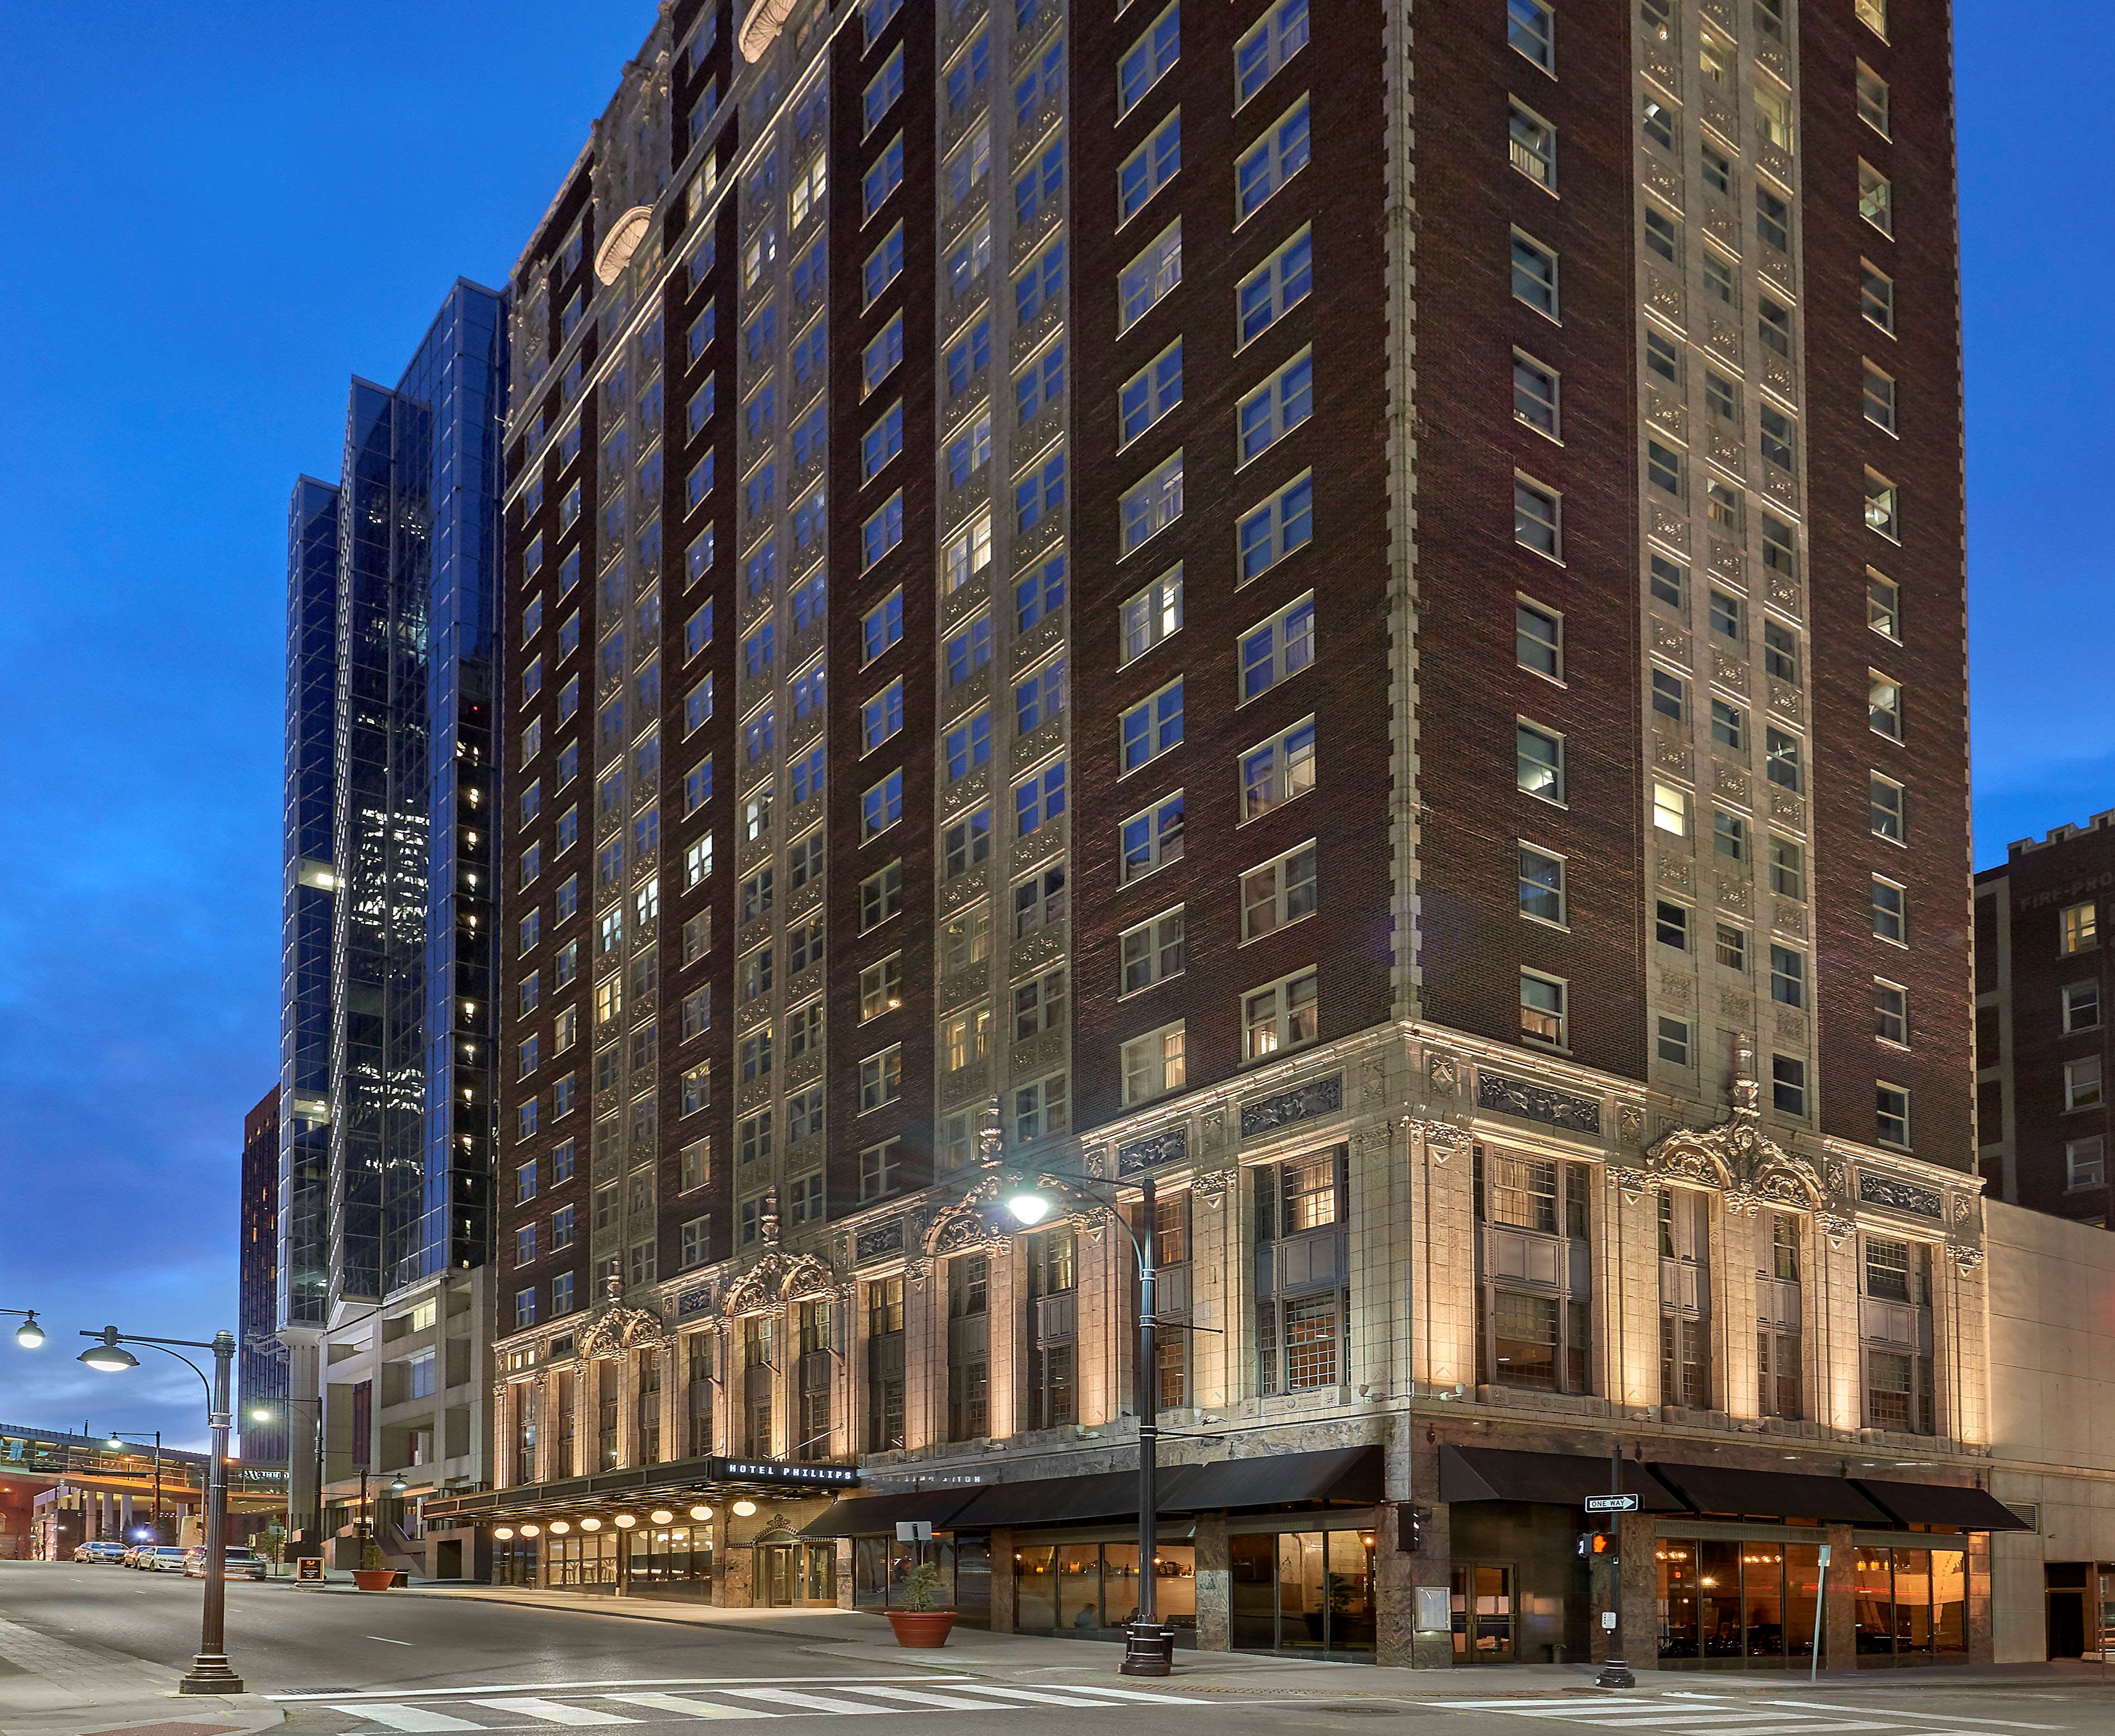 Hotel Phillips Kansas City, Curio Collection by Hilton image 3